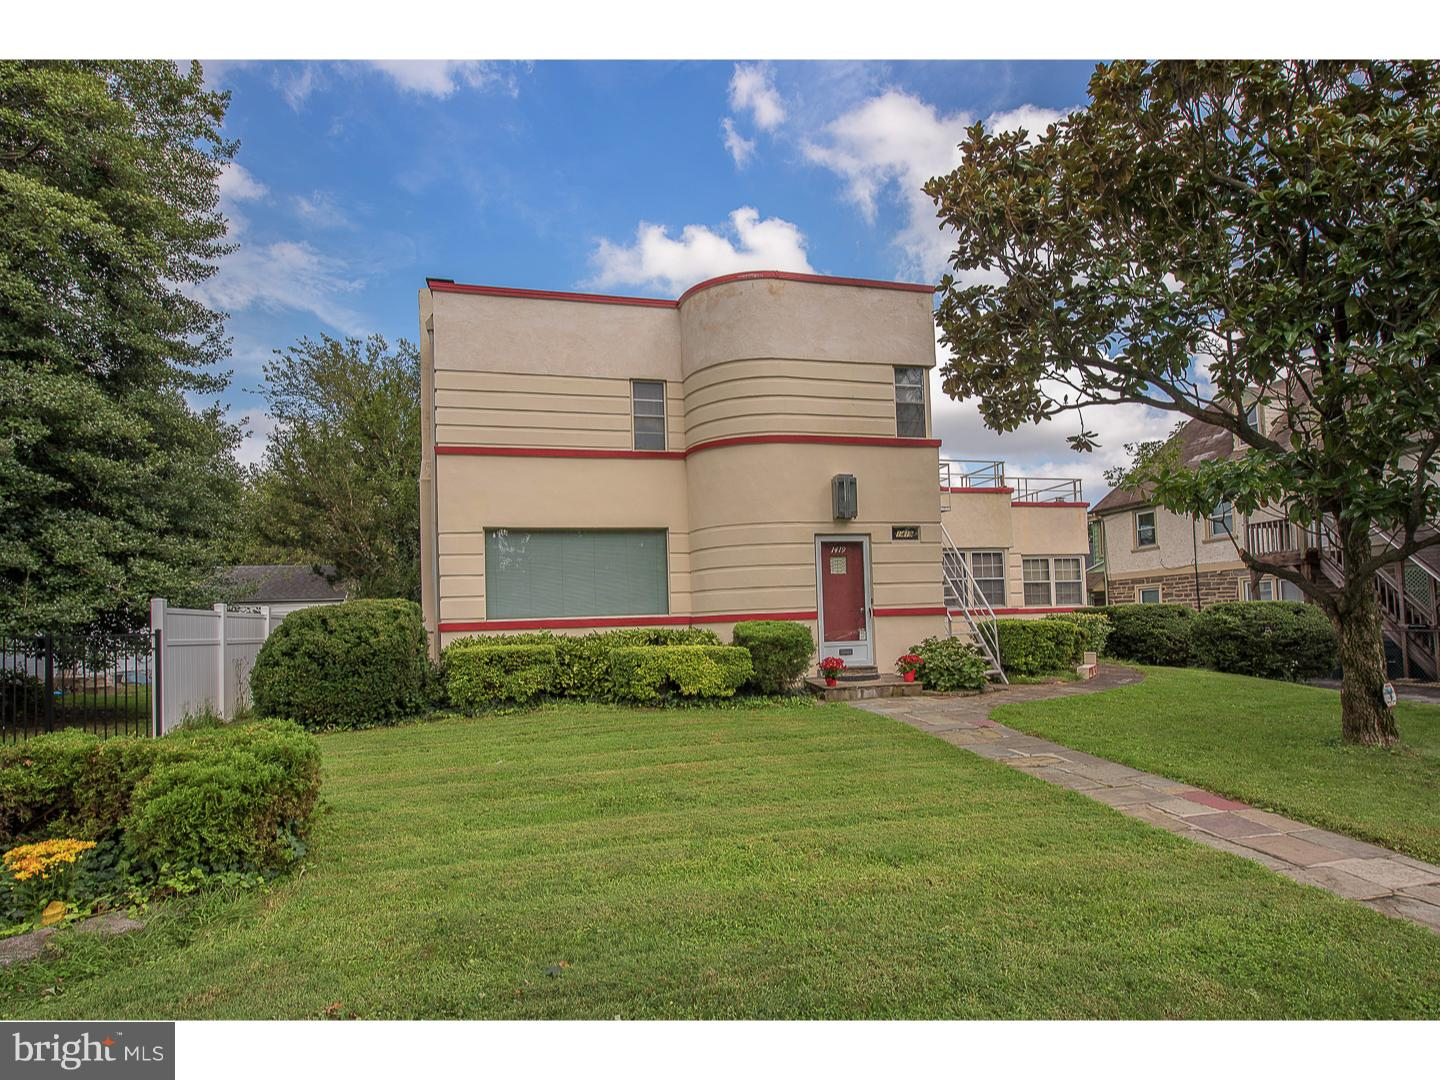 1419 E Darby Road Havertown, PA 19083